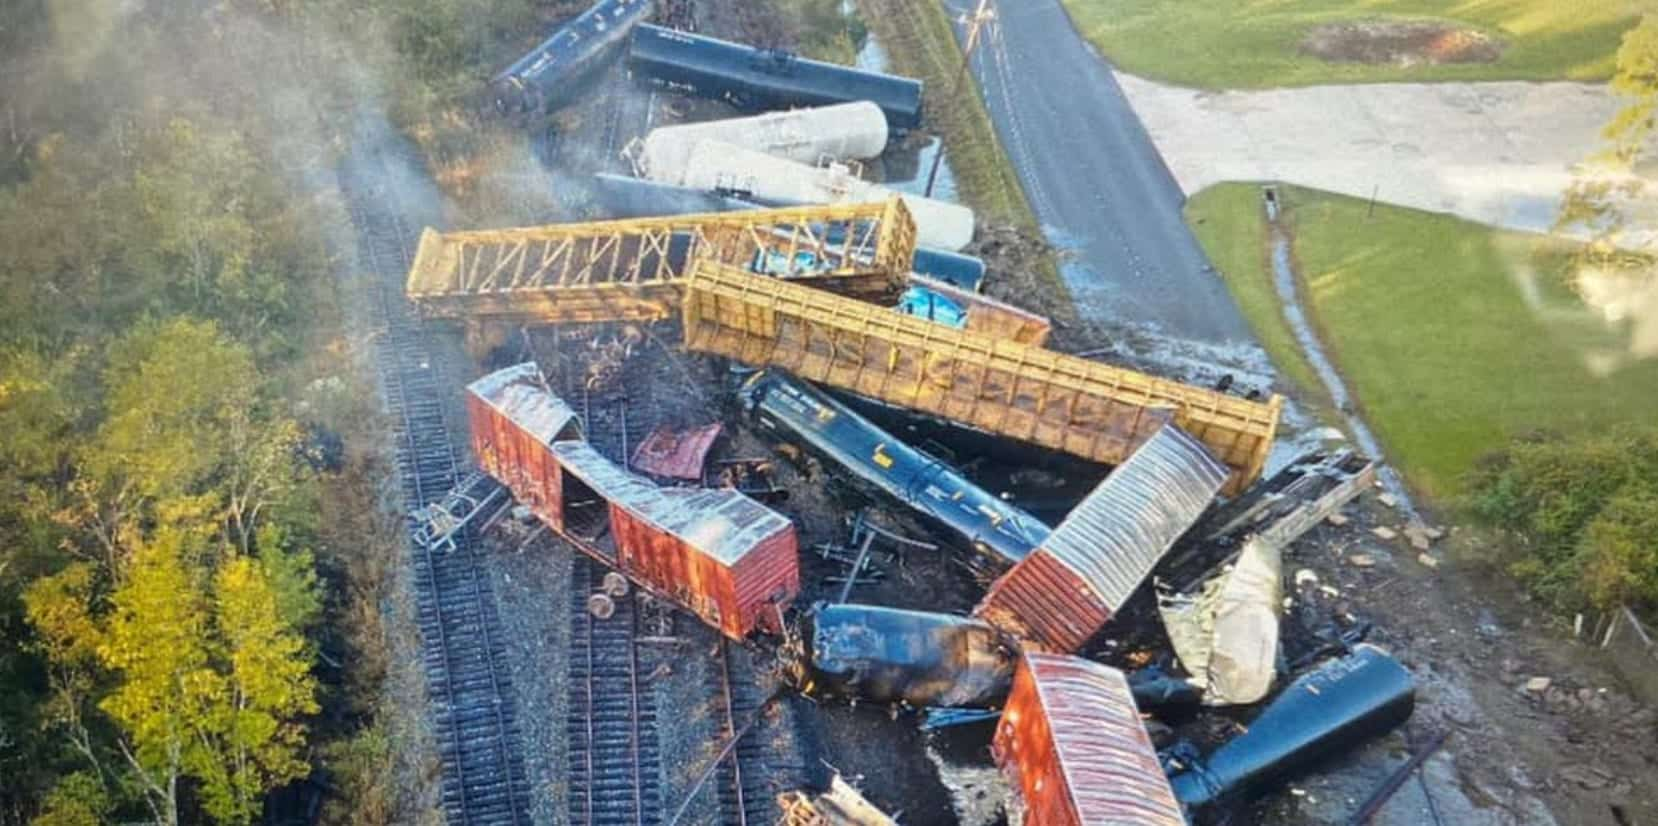 Drone team captures aerial photos of derailed train in southeast Texas